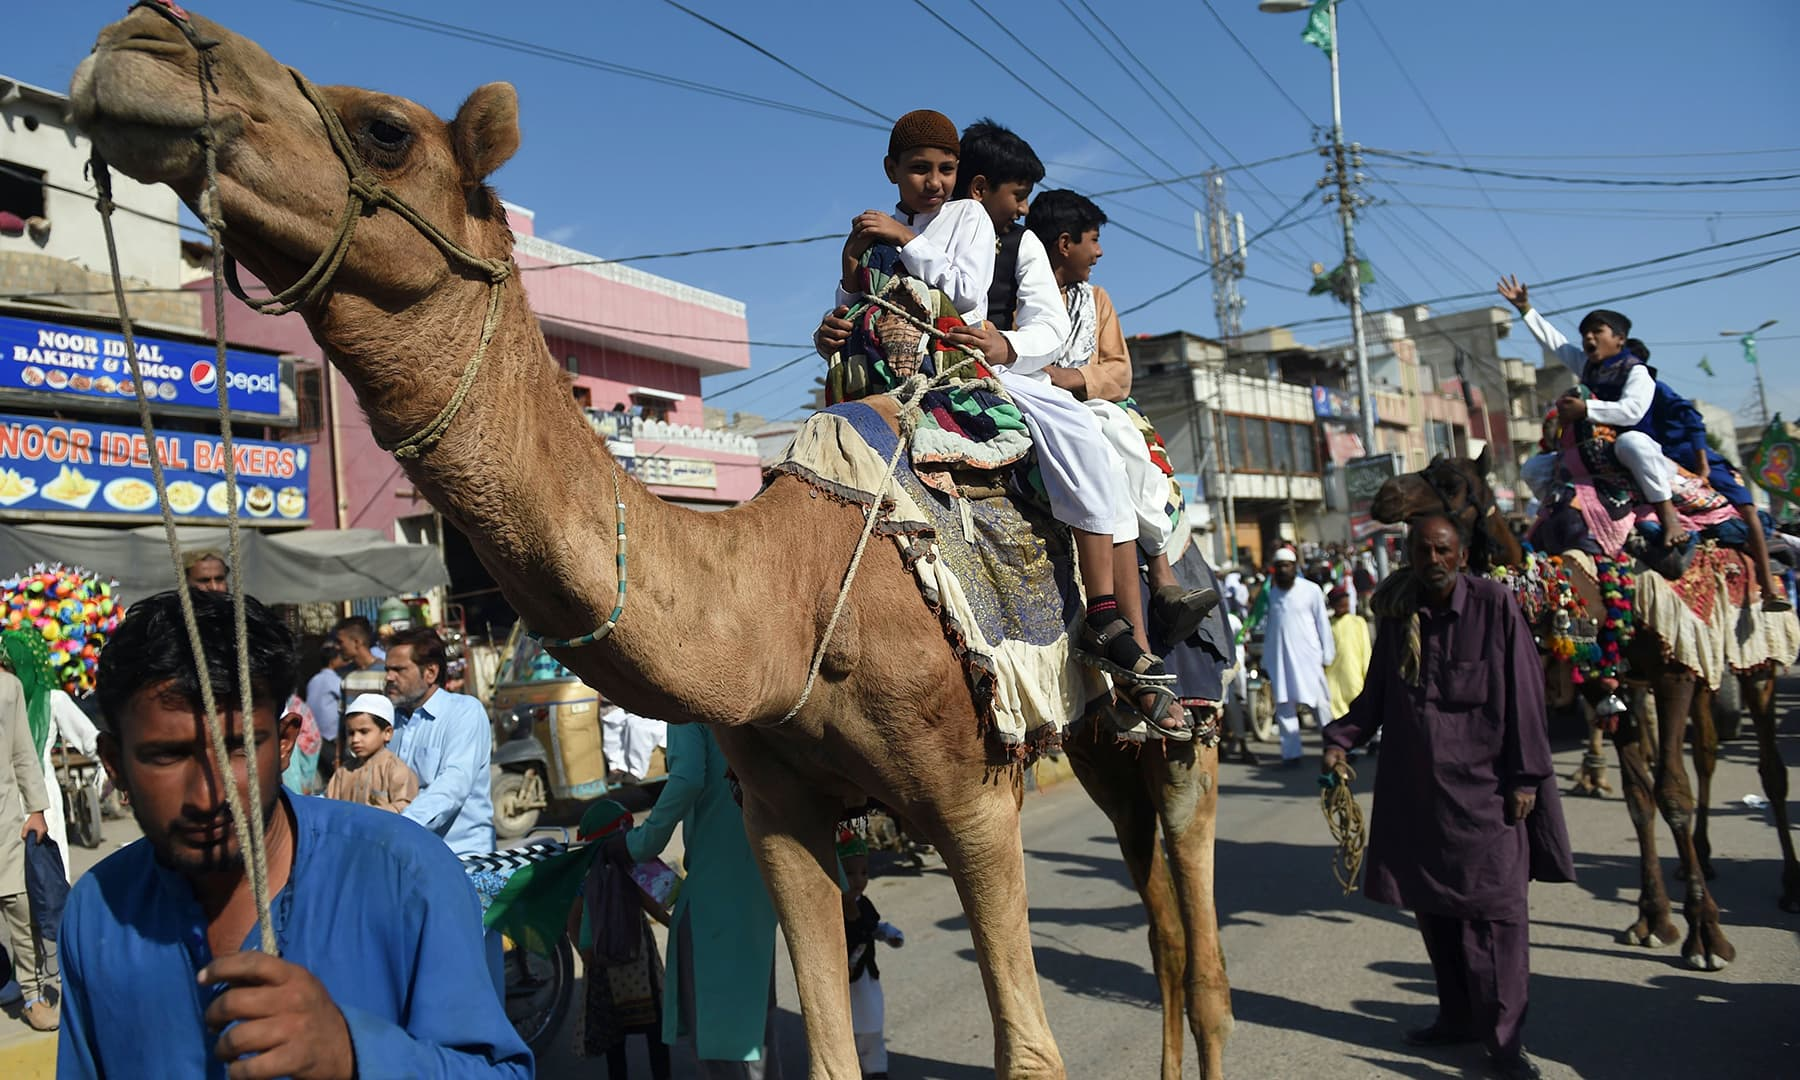 Children sit on camels as they participate in a procession to celebrate the birth of the Holy Prophet (PBUH), in Karachi on Sunday. — AFP